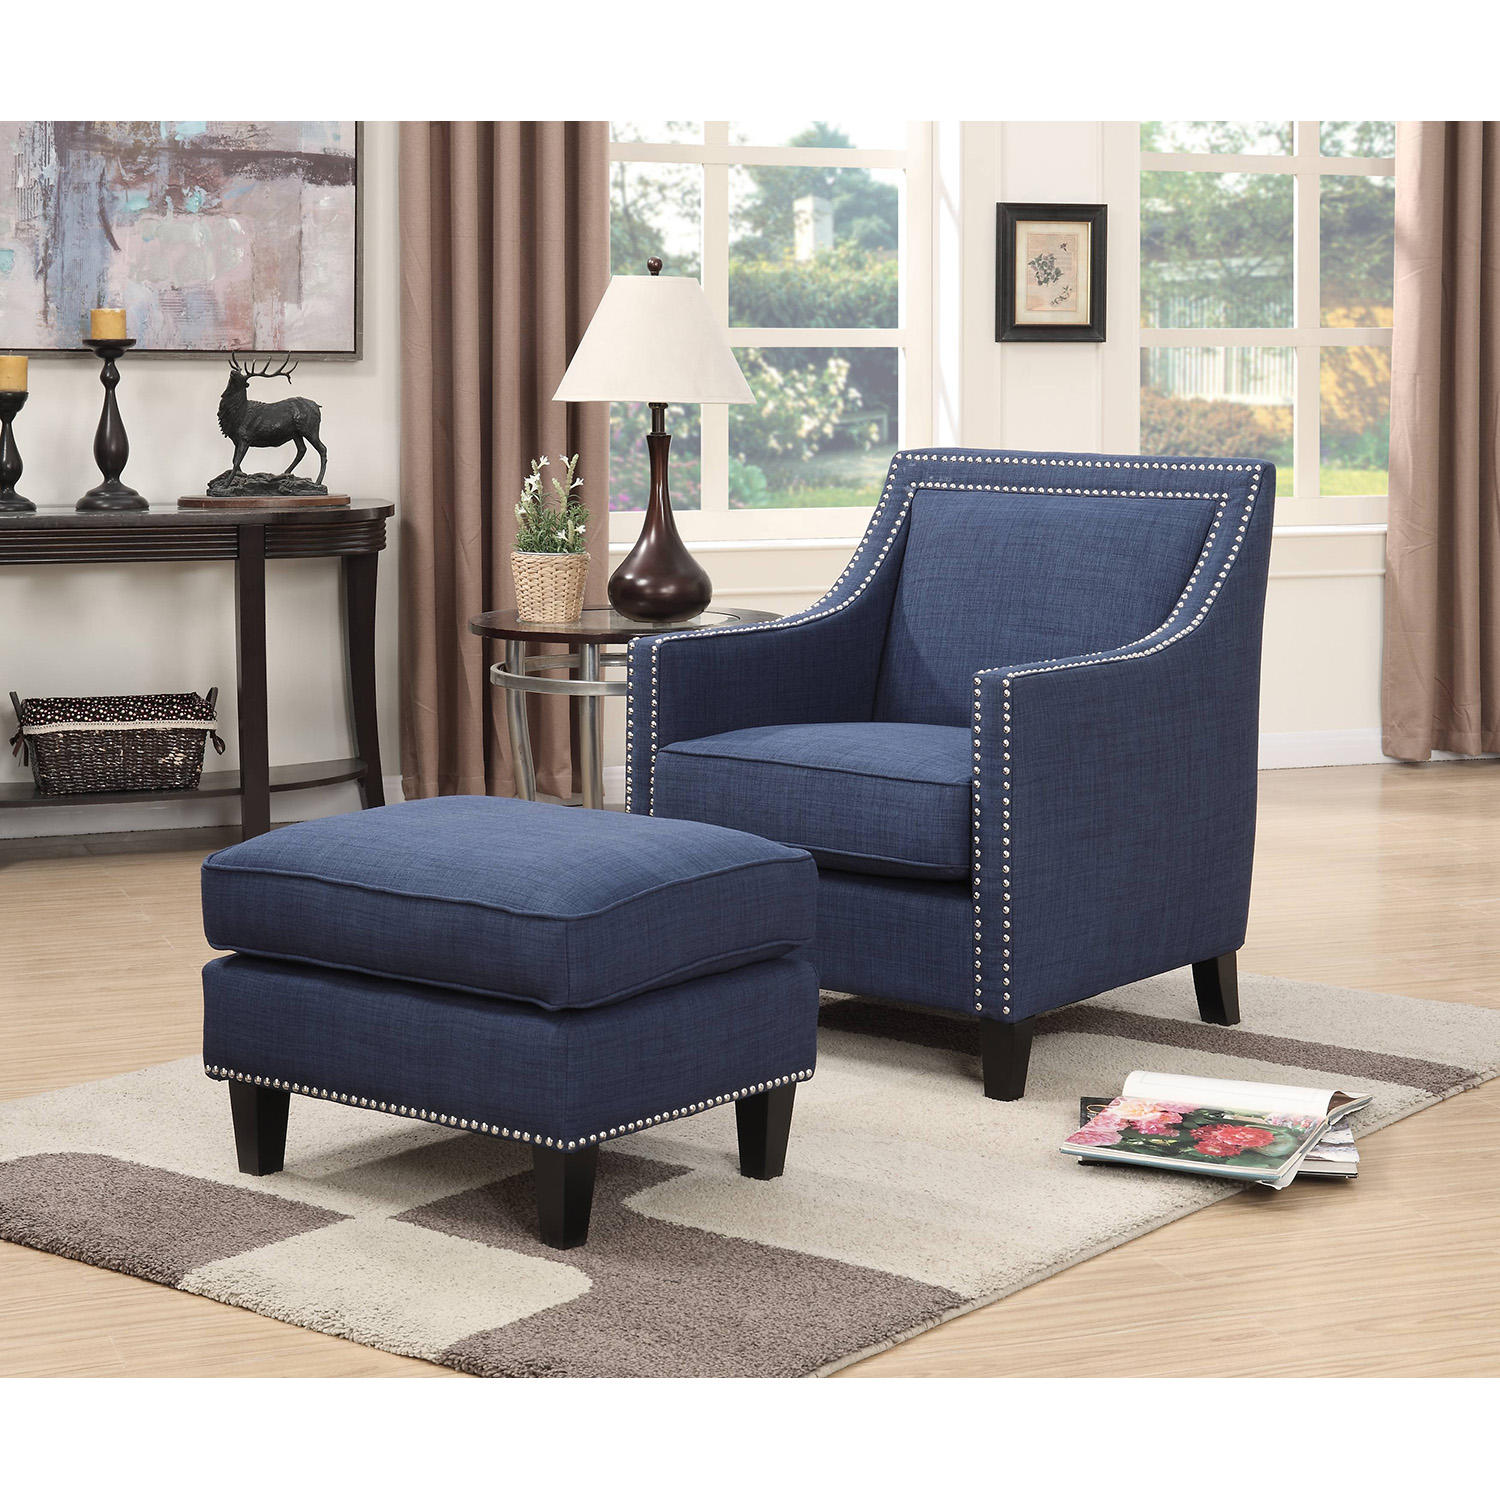 Society Den Emery Accent Chair & Ottoman (Assorted Colors)